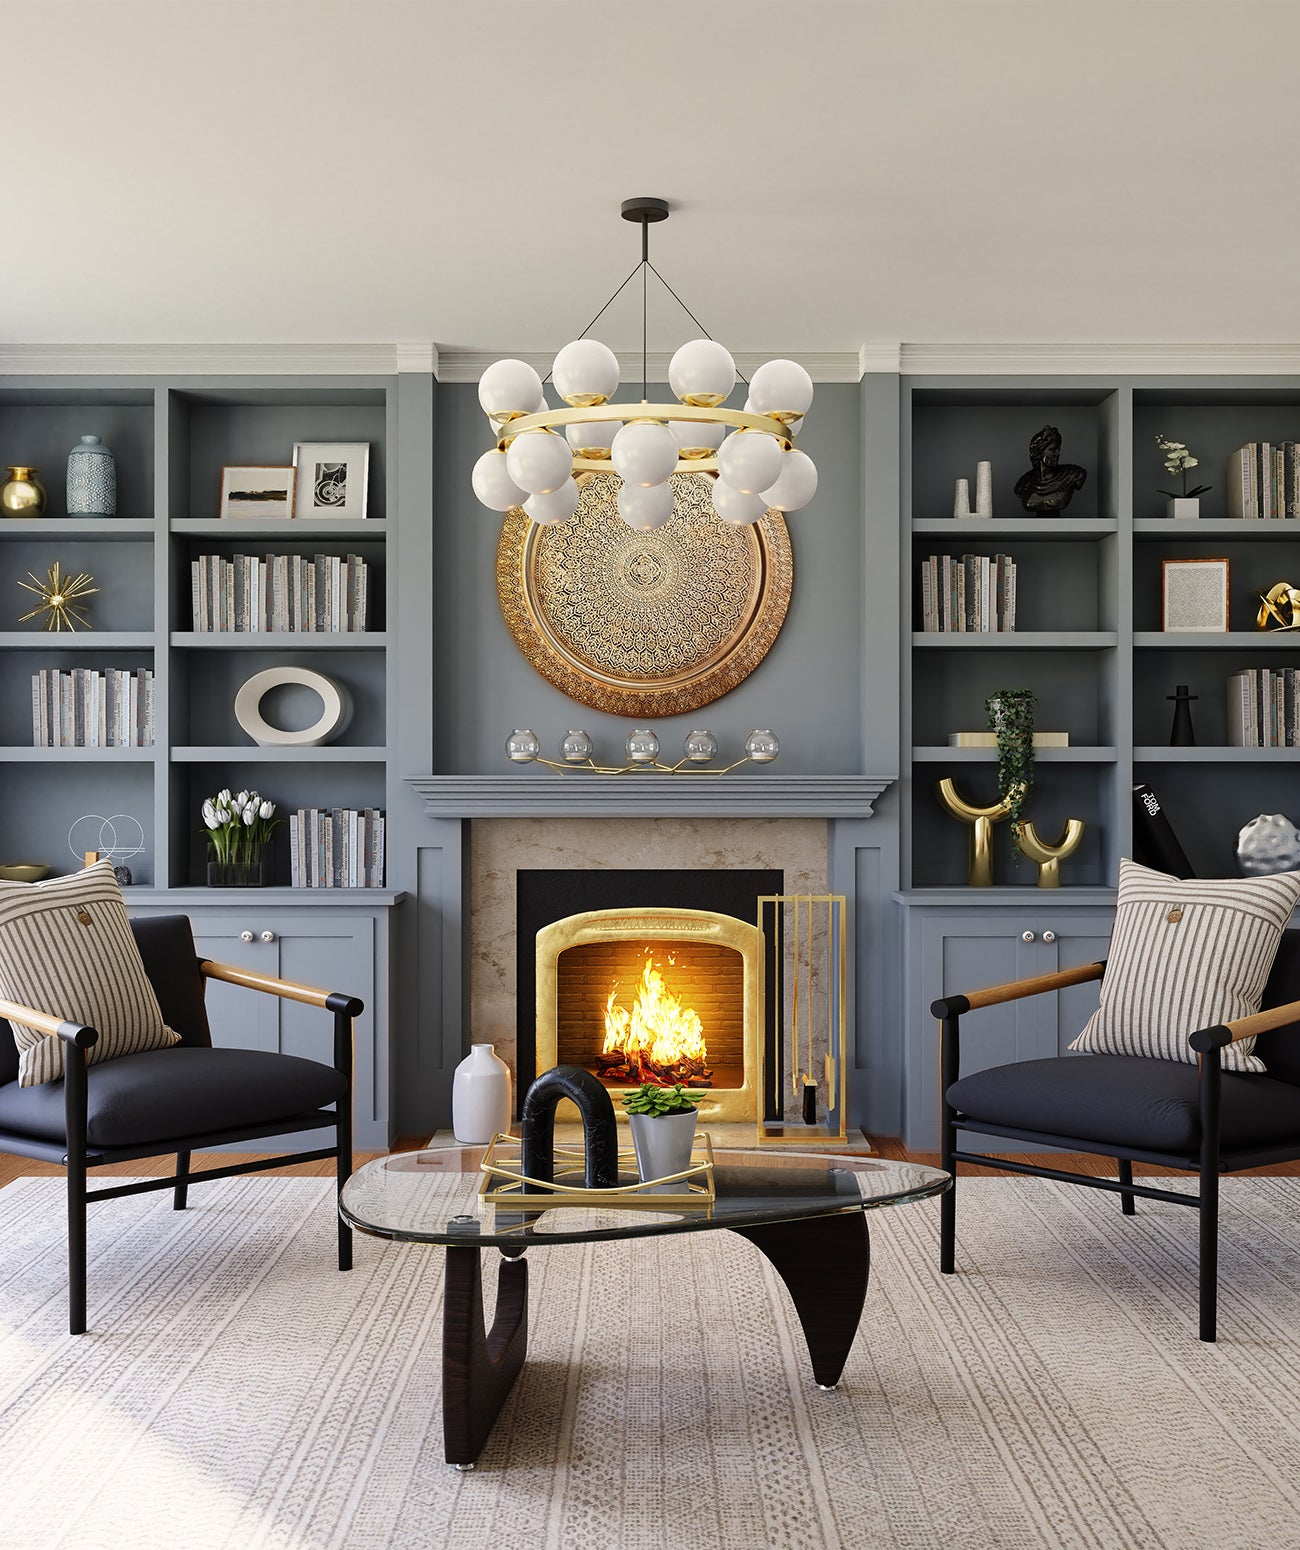 Gray traditional living room with chandelier and fireplace/Photography: Spacejoy/A traditional living room is brought to life with a well-placed, central fireplace as the focal point.